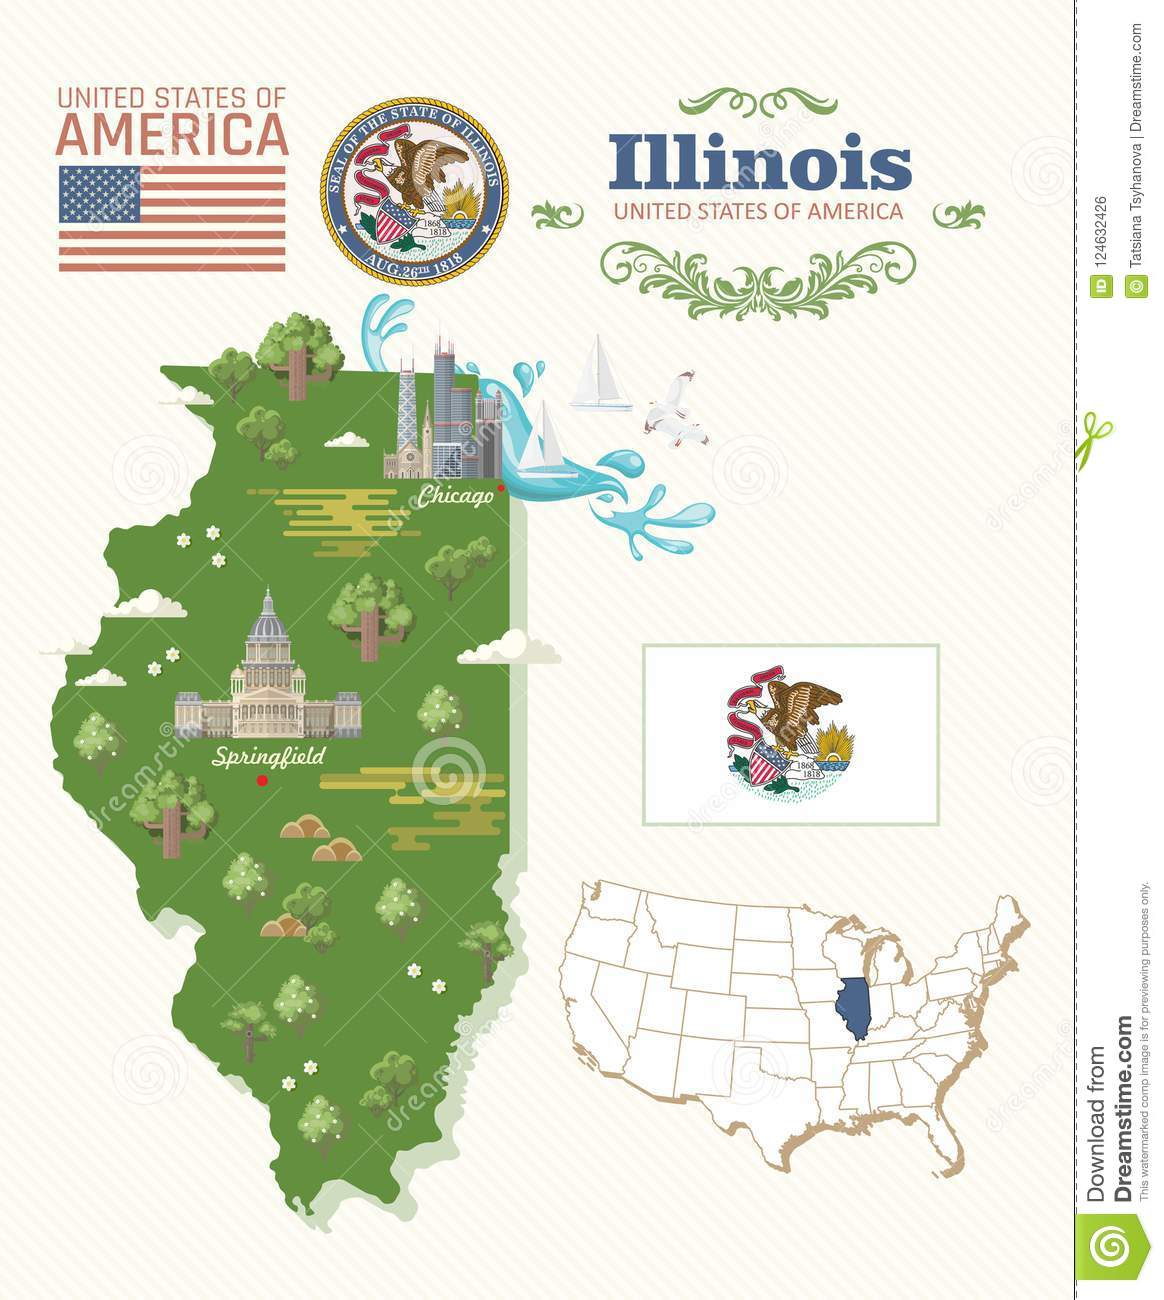 Illinois Vector Postcard Map Us State United States Of America - Illinois-in-us-map